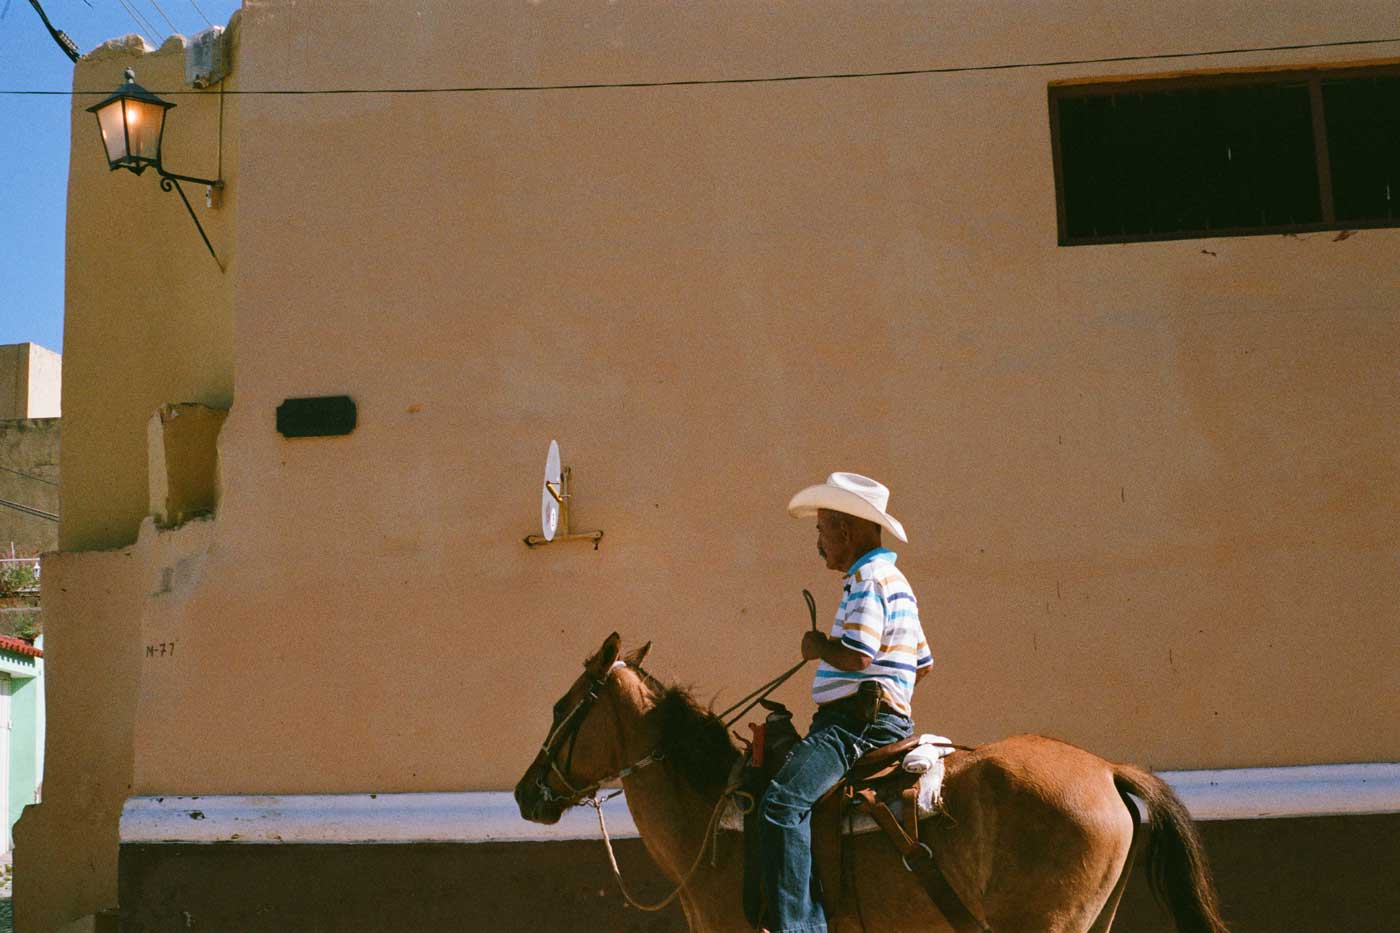 35mm-focal-length-guide-tips-beginner-documentary-story-telling-zone-focus-field-view-perspective-compression-angle-summilux-cuba-havana-film-photography-horse-riding